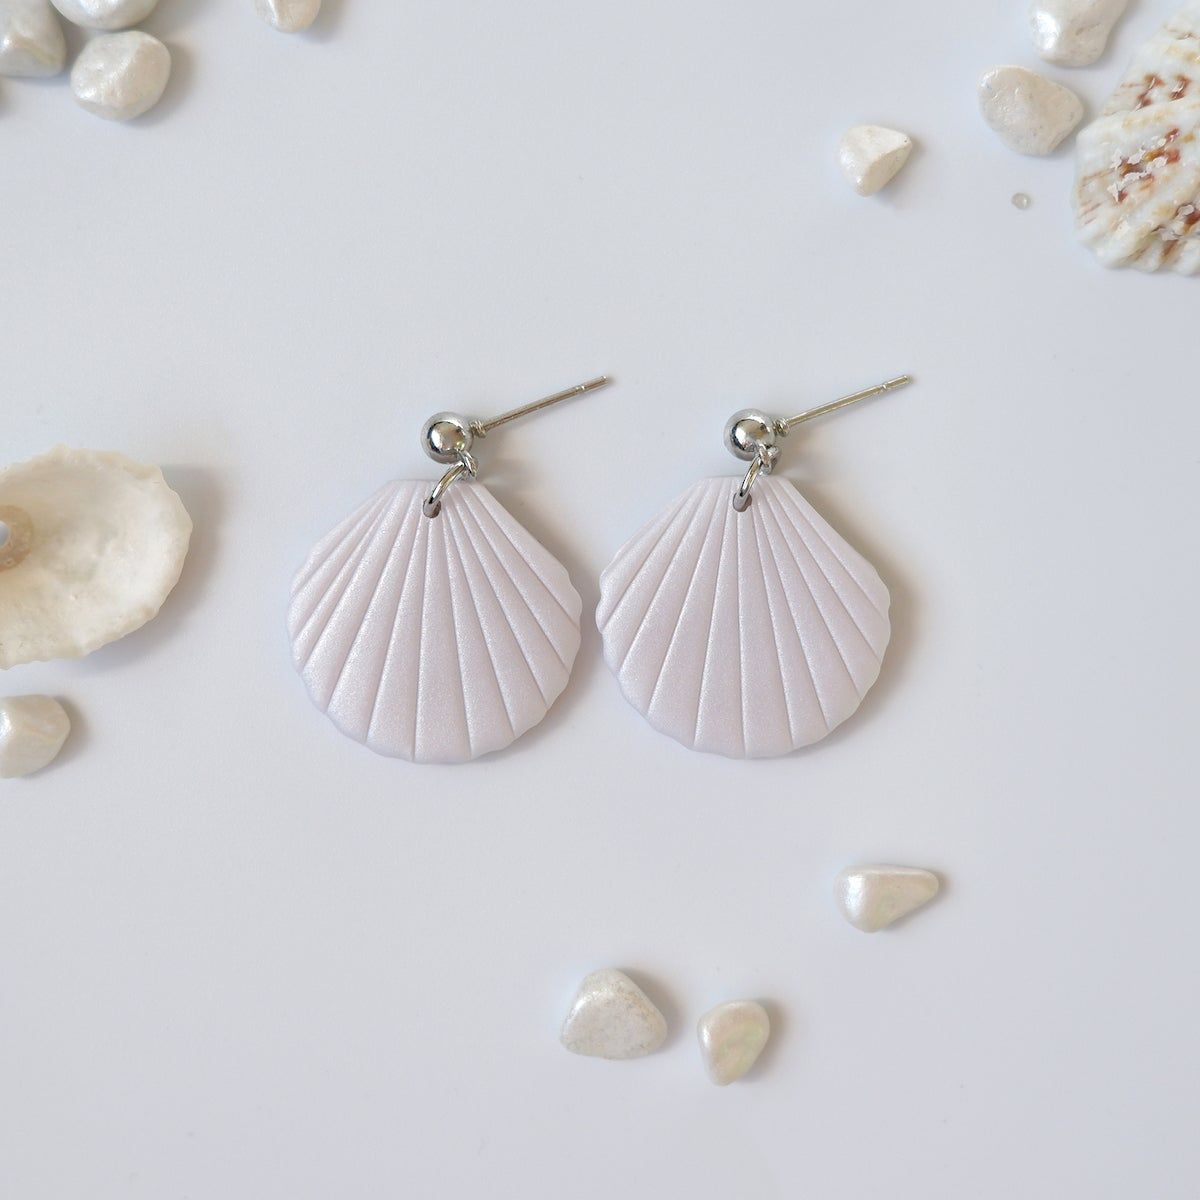 Striped Muted Tones Polymer Clay Post Earrings Gifts Handmade Striped Polymer Clay Posts Striped Studs Small Striped Earrings